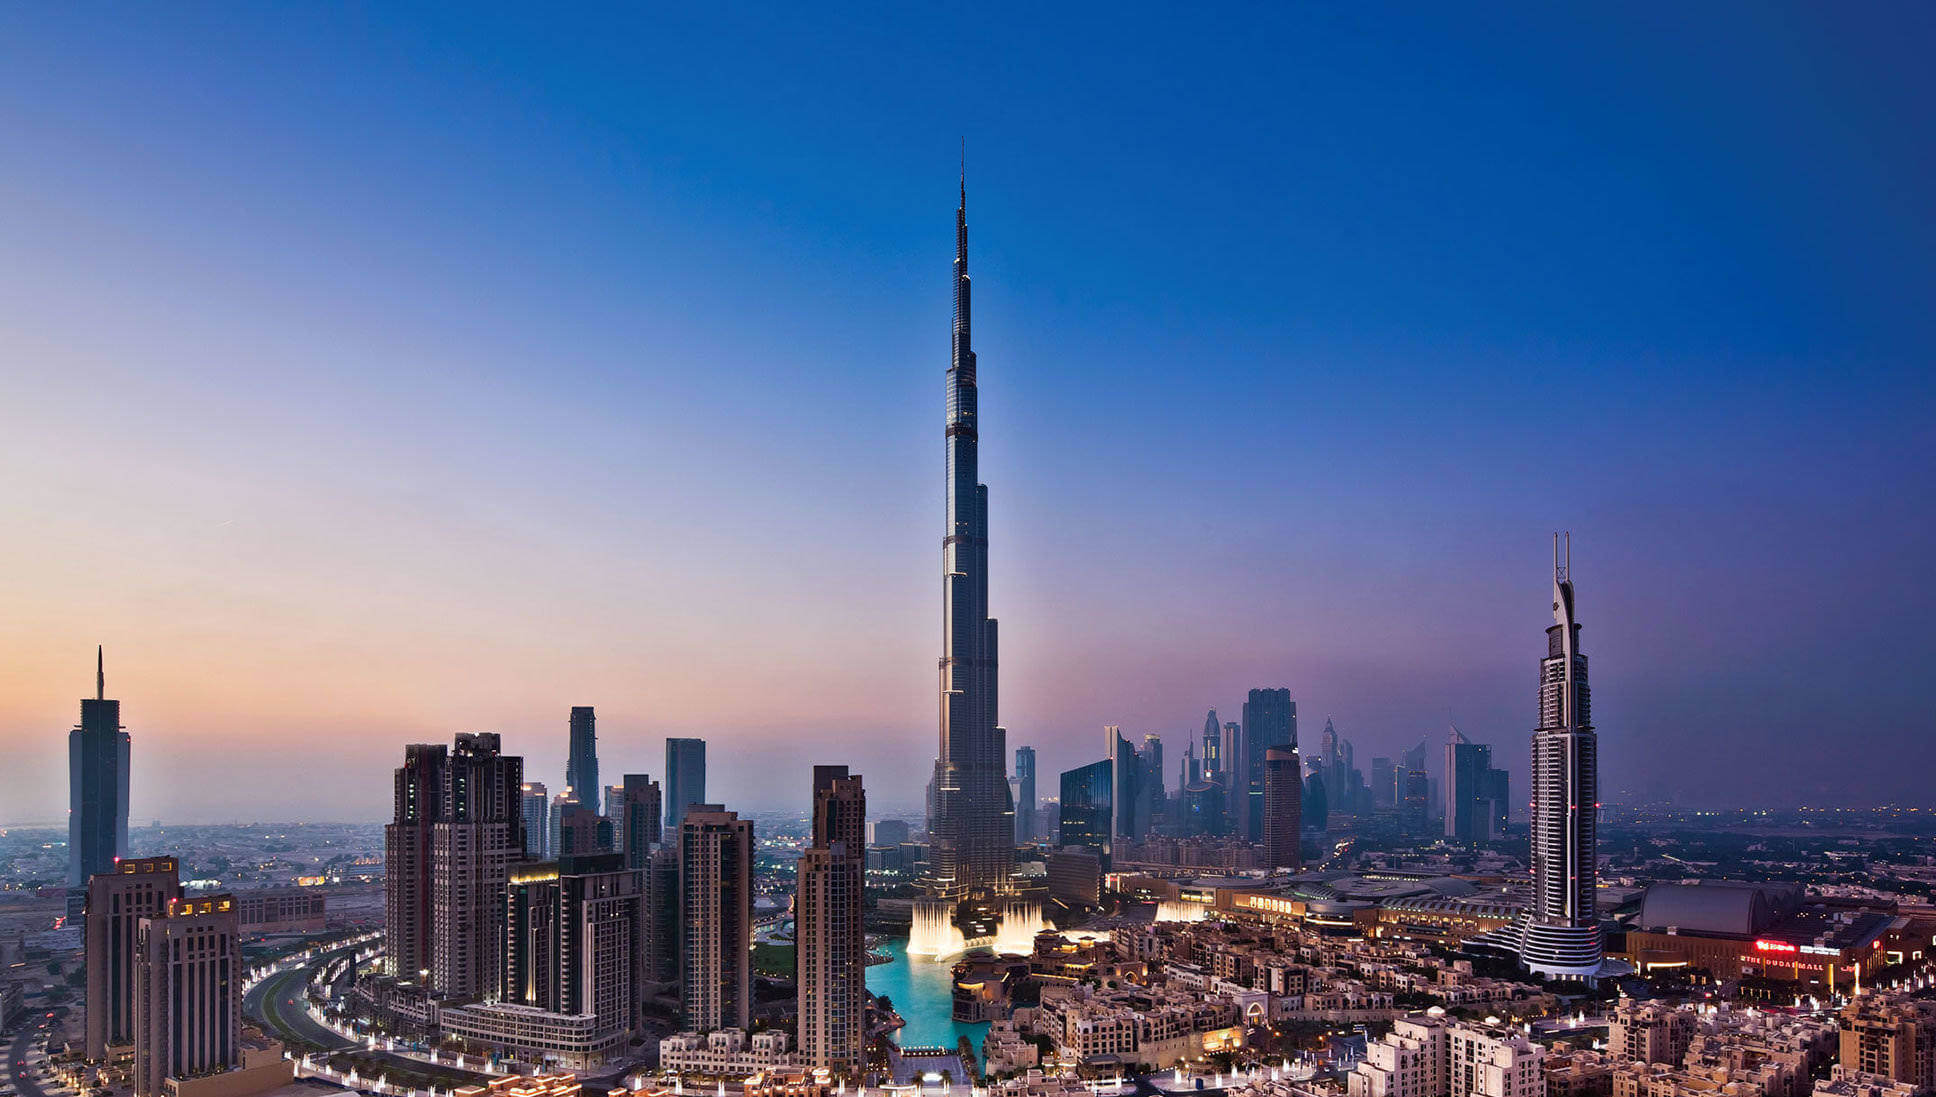 Top 15 Dubai Hidden Gems From Food to Attractions